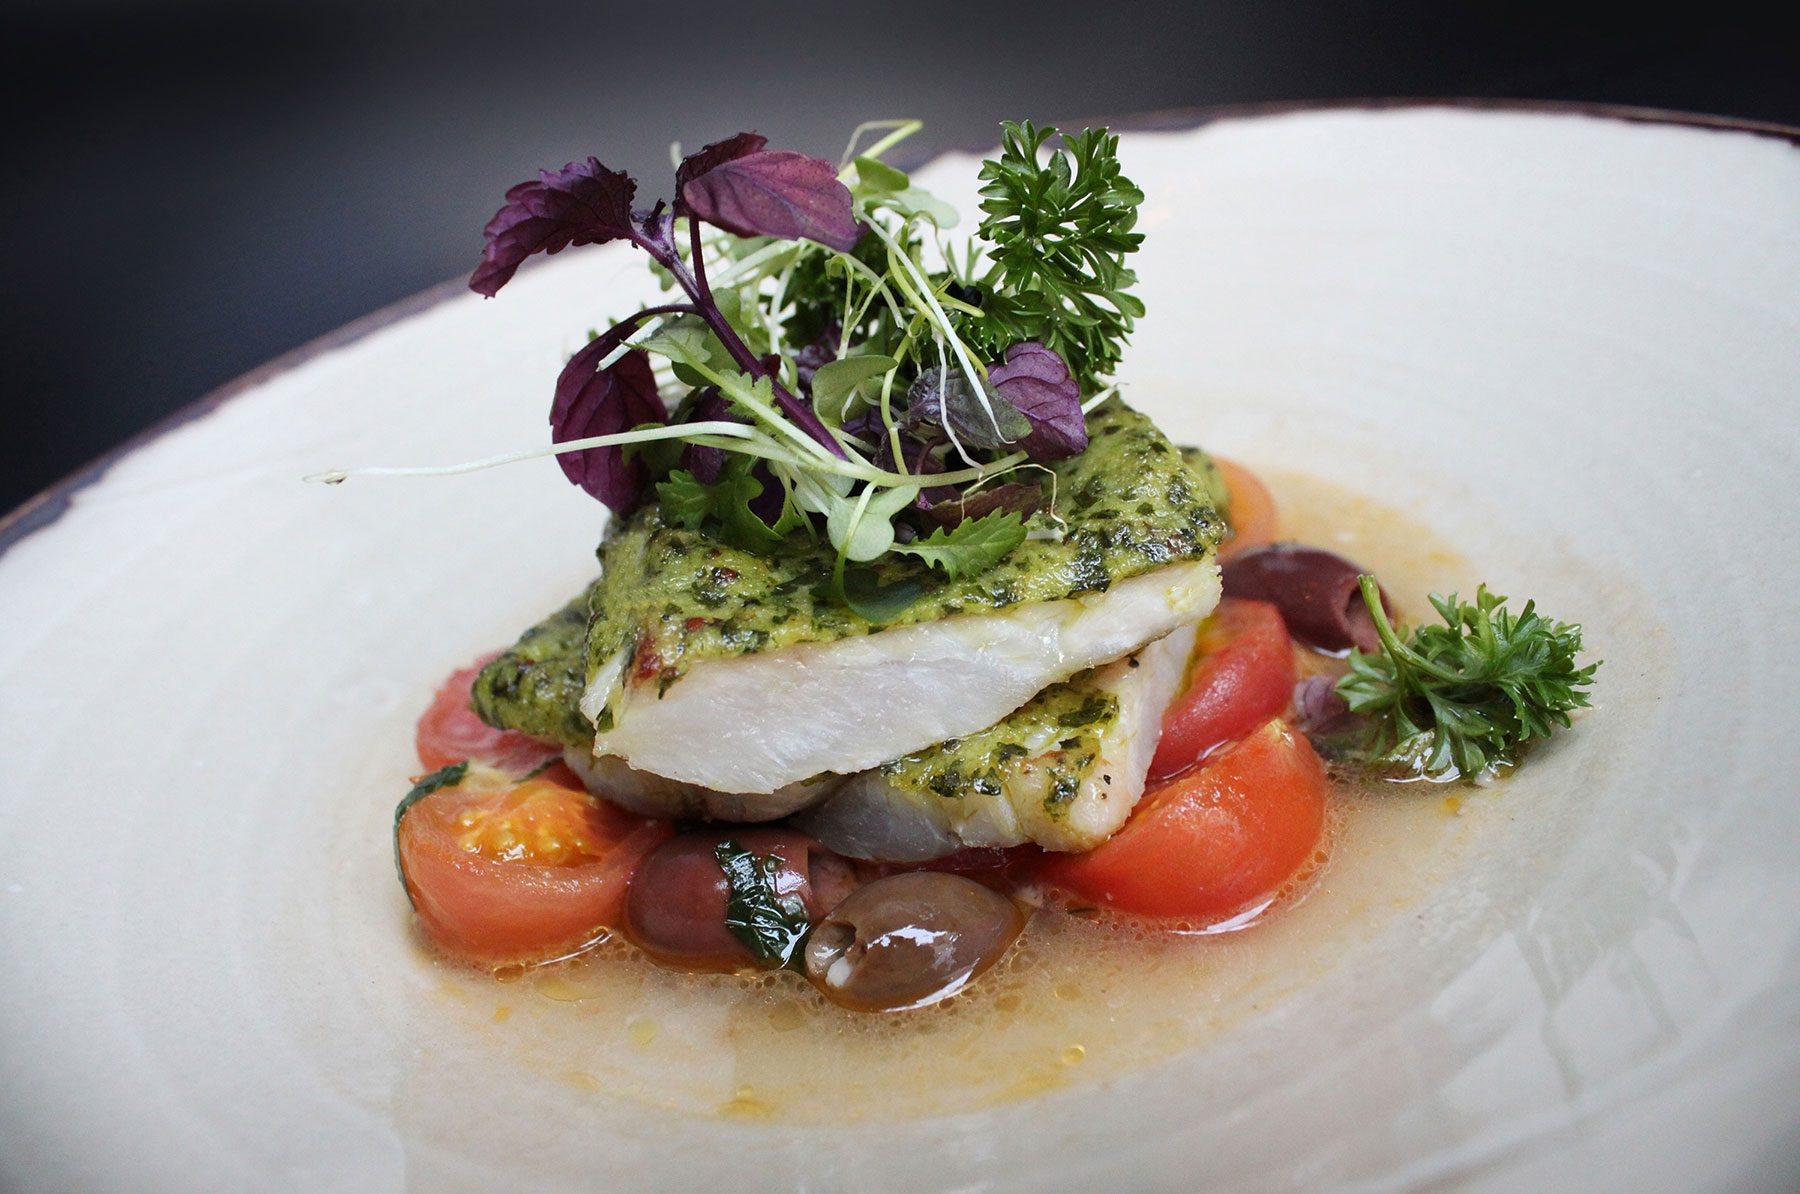 Grand-Copthorne-King's-Hotel-Singapore_Pan-seared-seabass-fillet